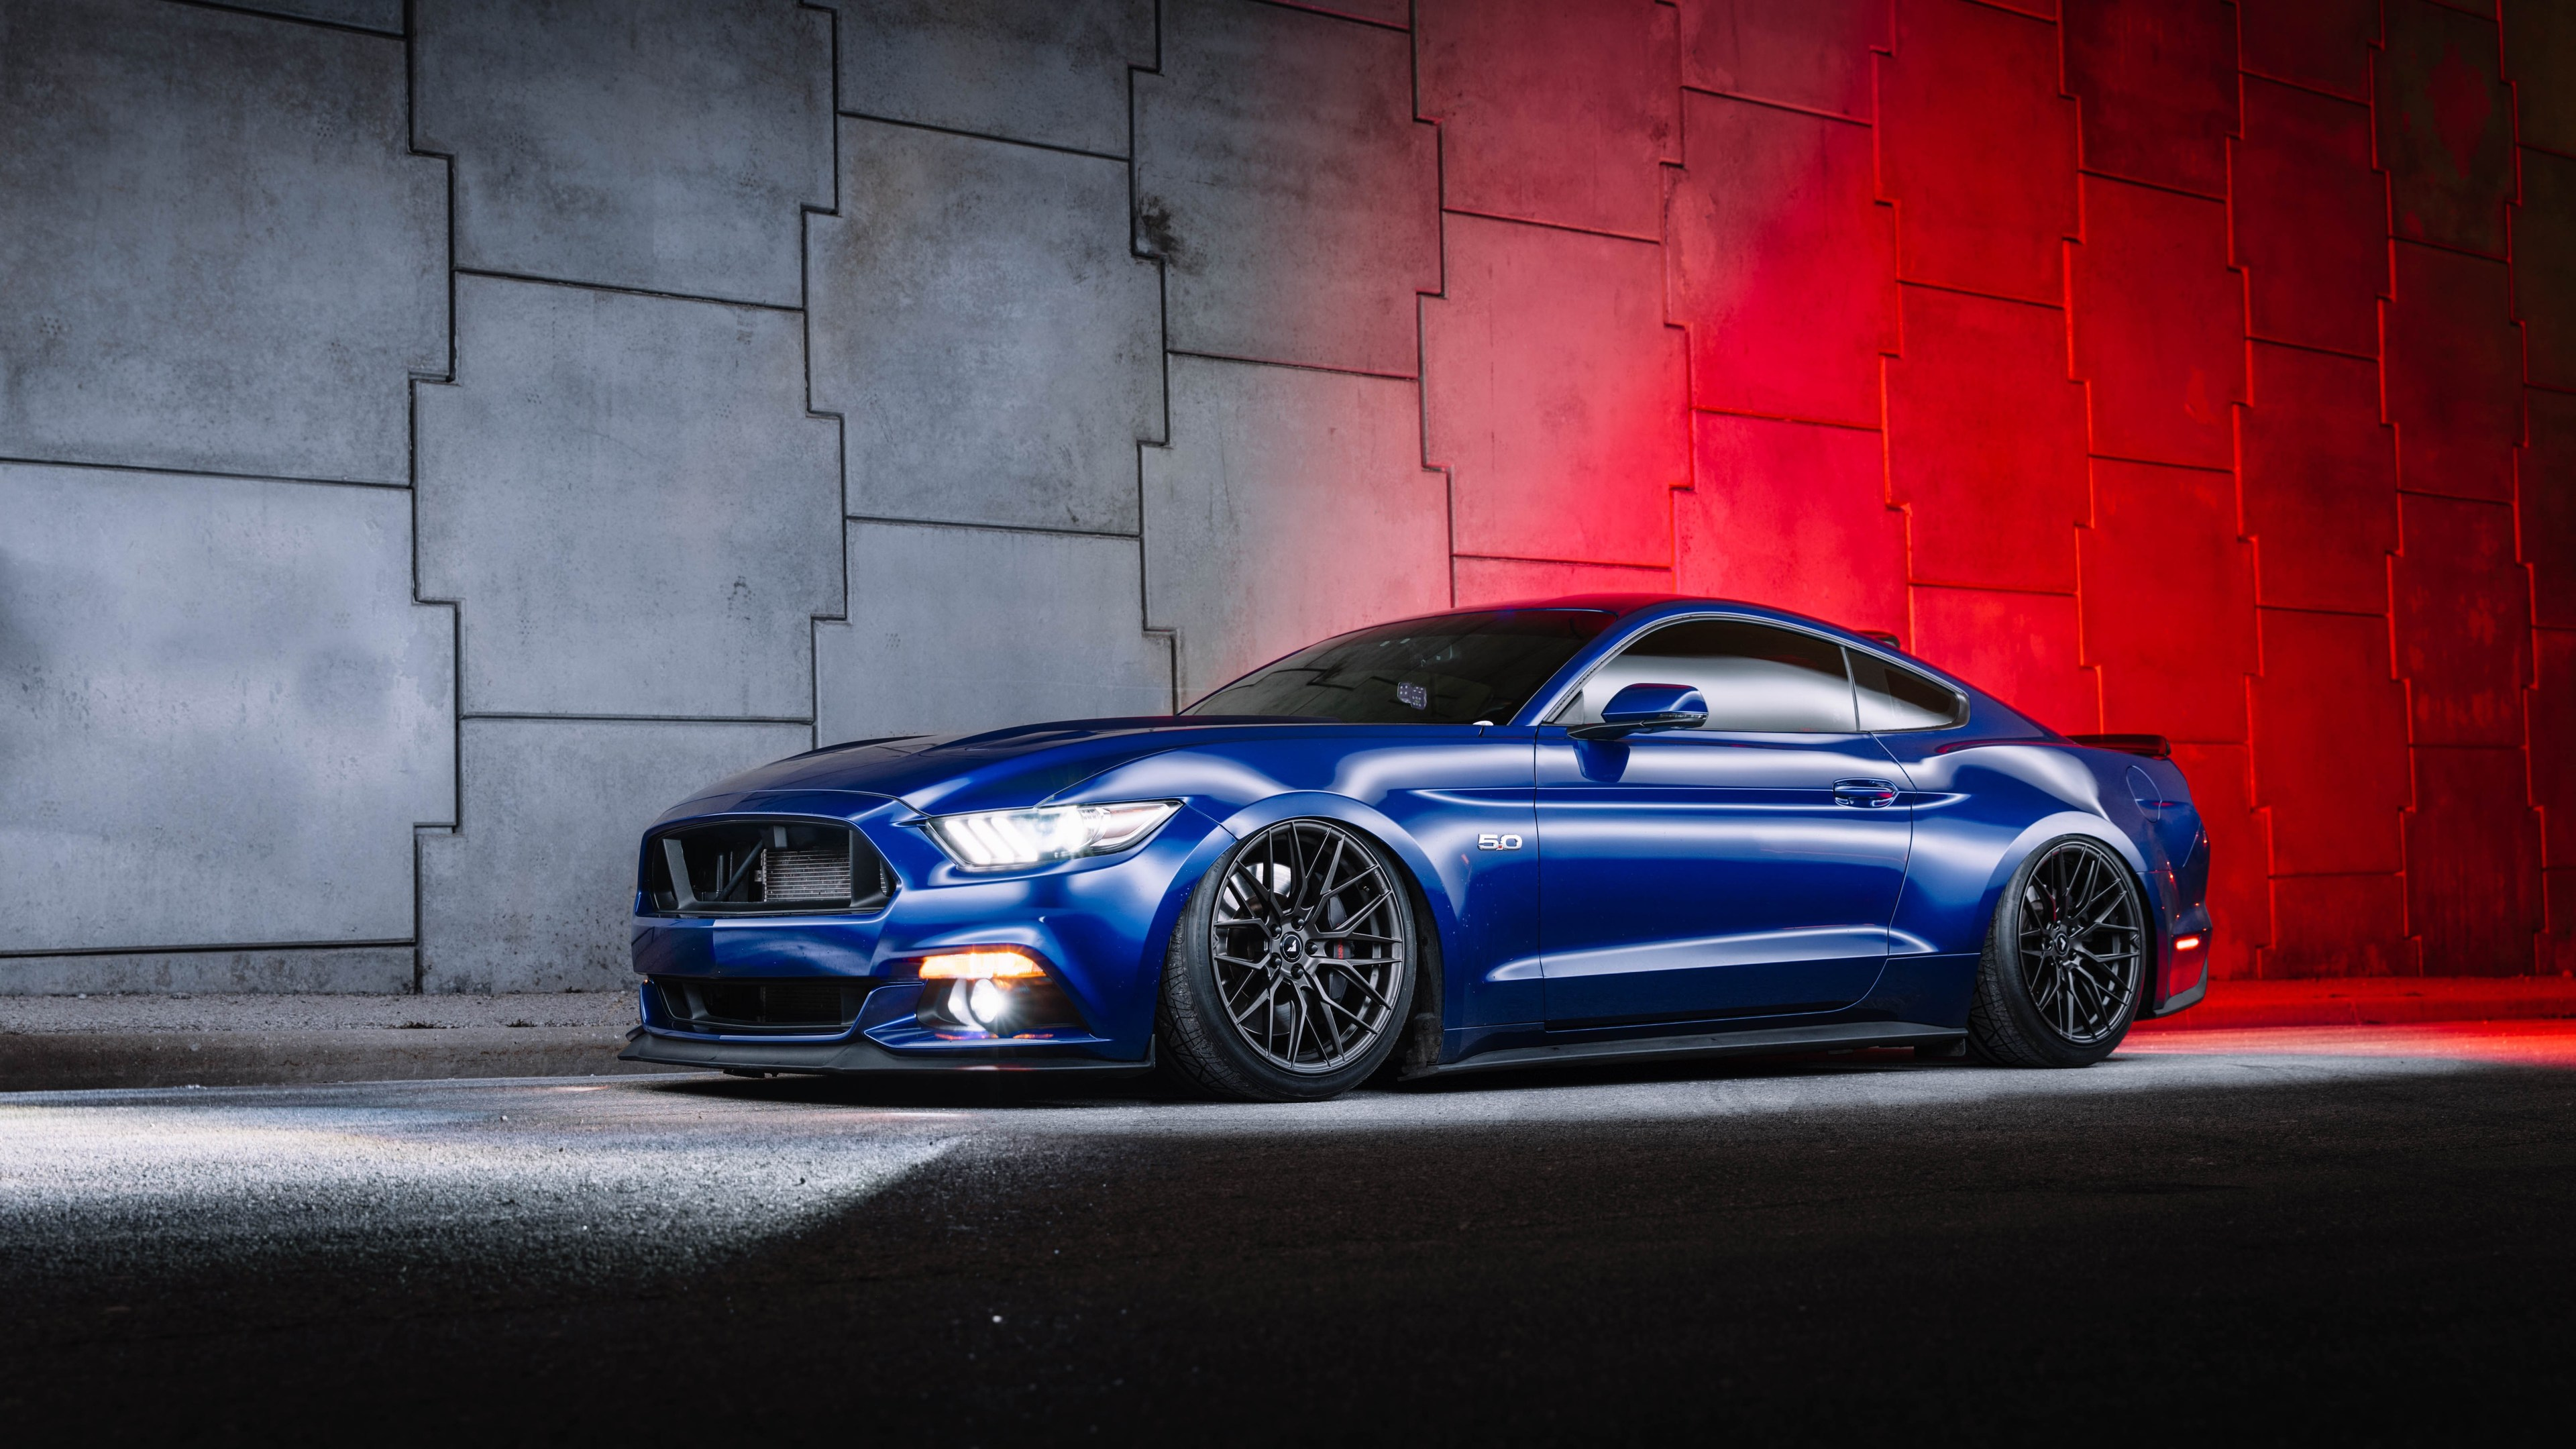 blue ford mustang 1562107958 - Blue Ford Mustang - hd-wallpapers, ford wallpapers, ford mustang wallpapers, cars wallpapers, 5k wallpapers, 4k-wallpapers